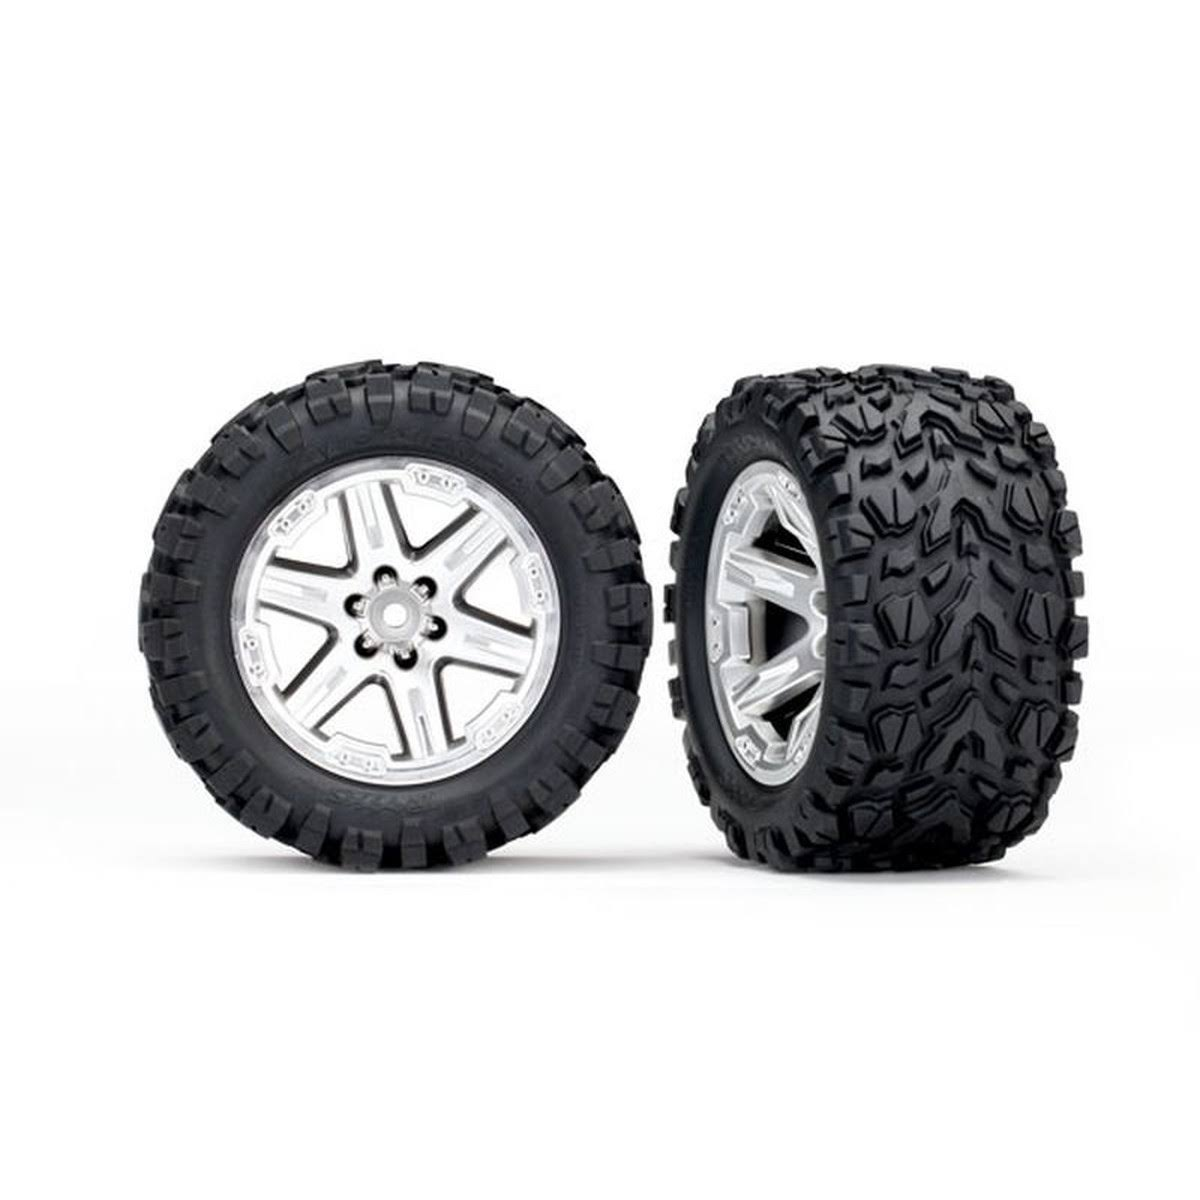 Traxxas 6773r Talon on Circles Tires - Silver Hex, 12mm